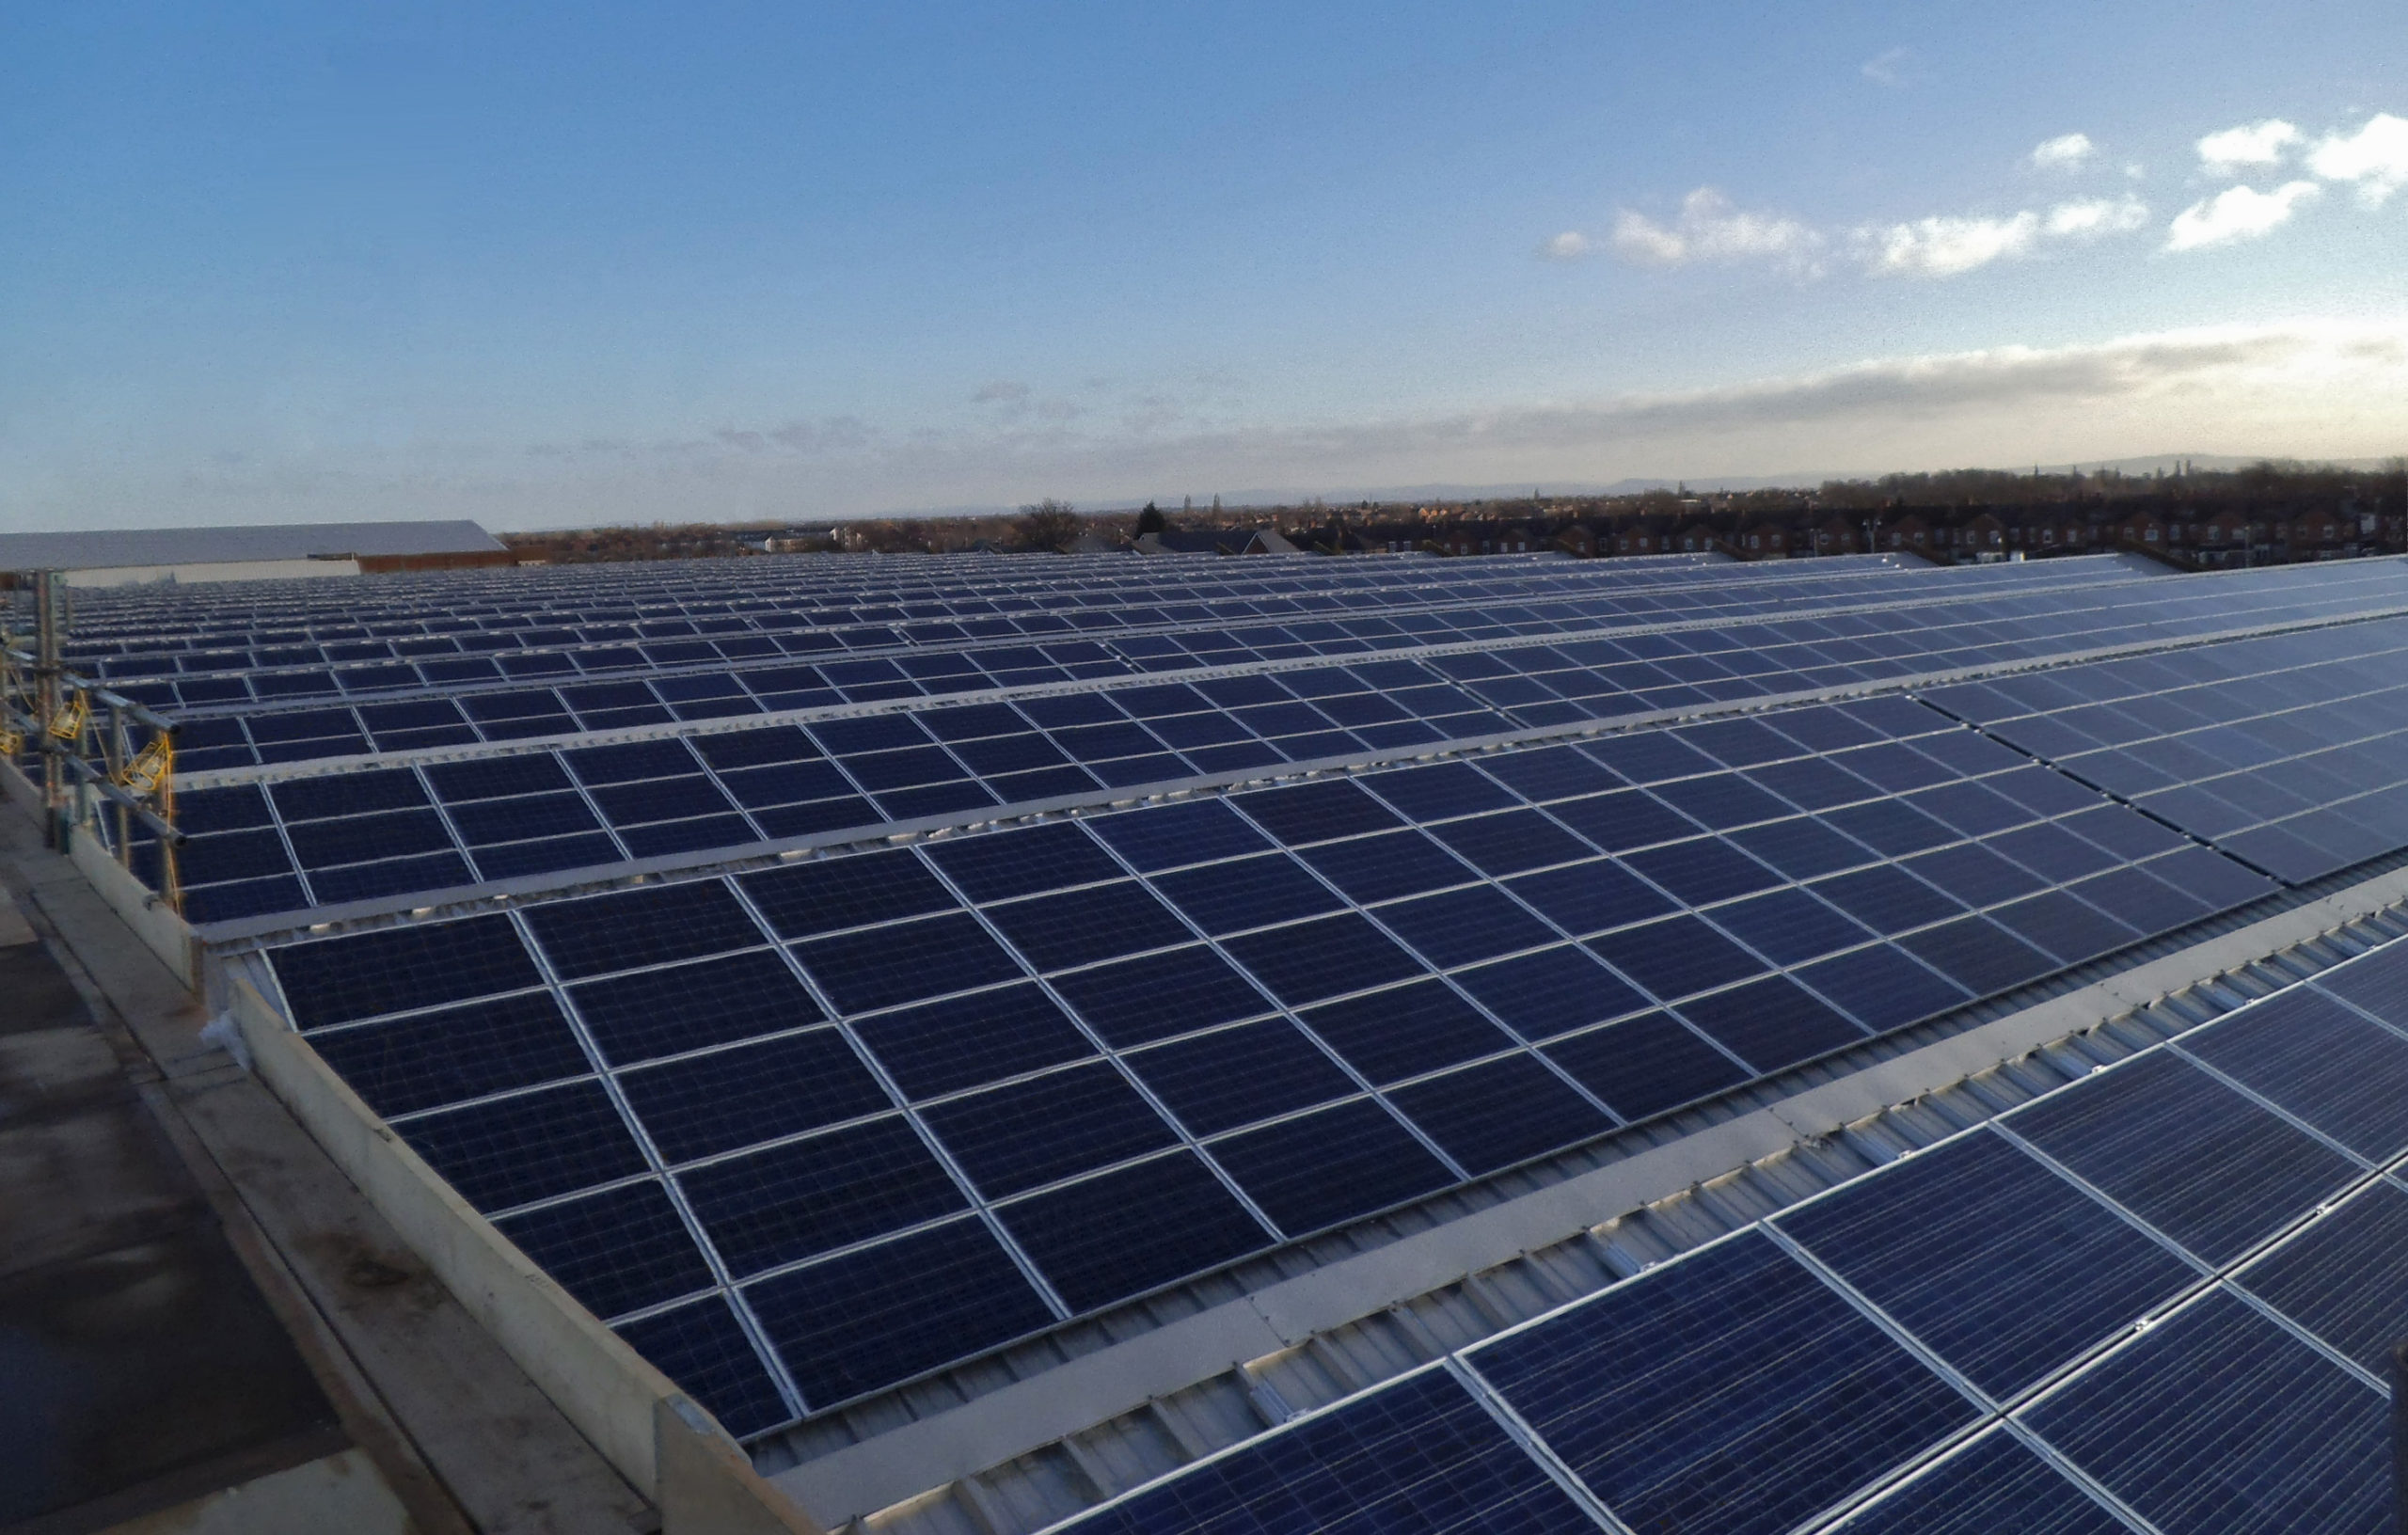 Lightsource BP will finance, develop, build, own, and operate the solar facility and will deliver energy to AMEA under a 20-year power purchase agreement (PPA). Image: Lightsource BP